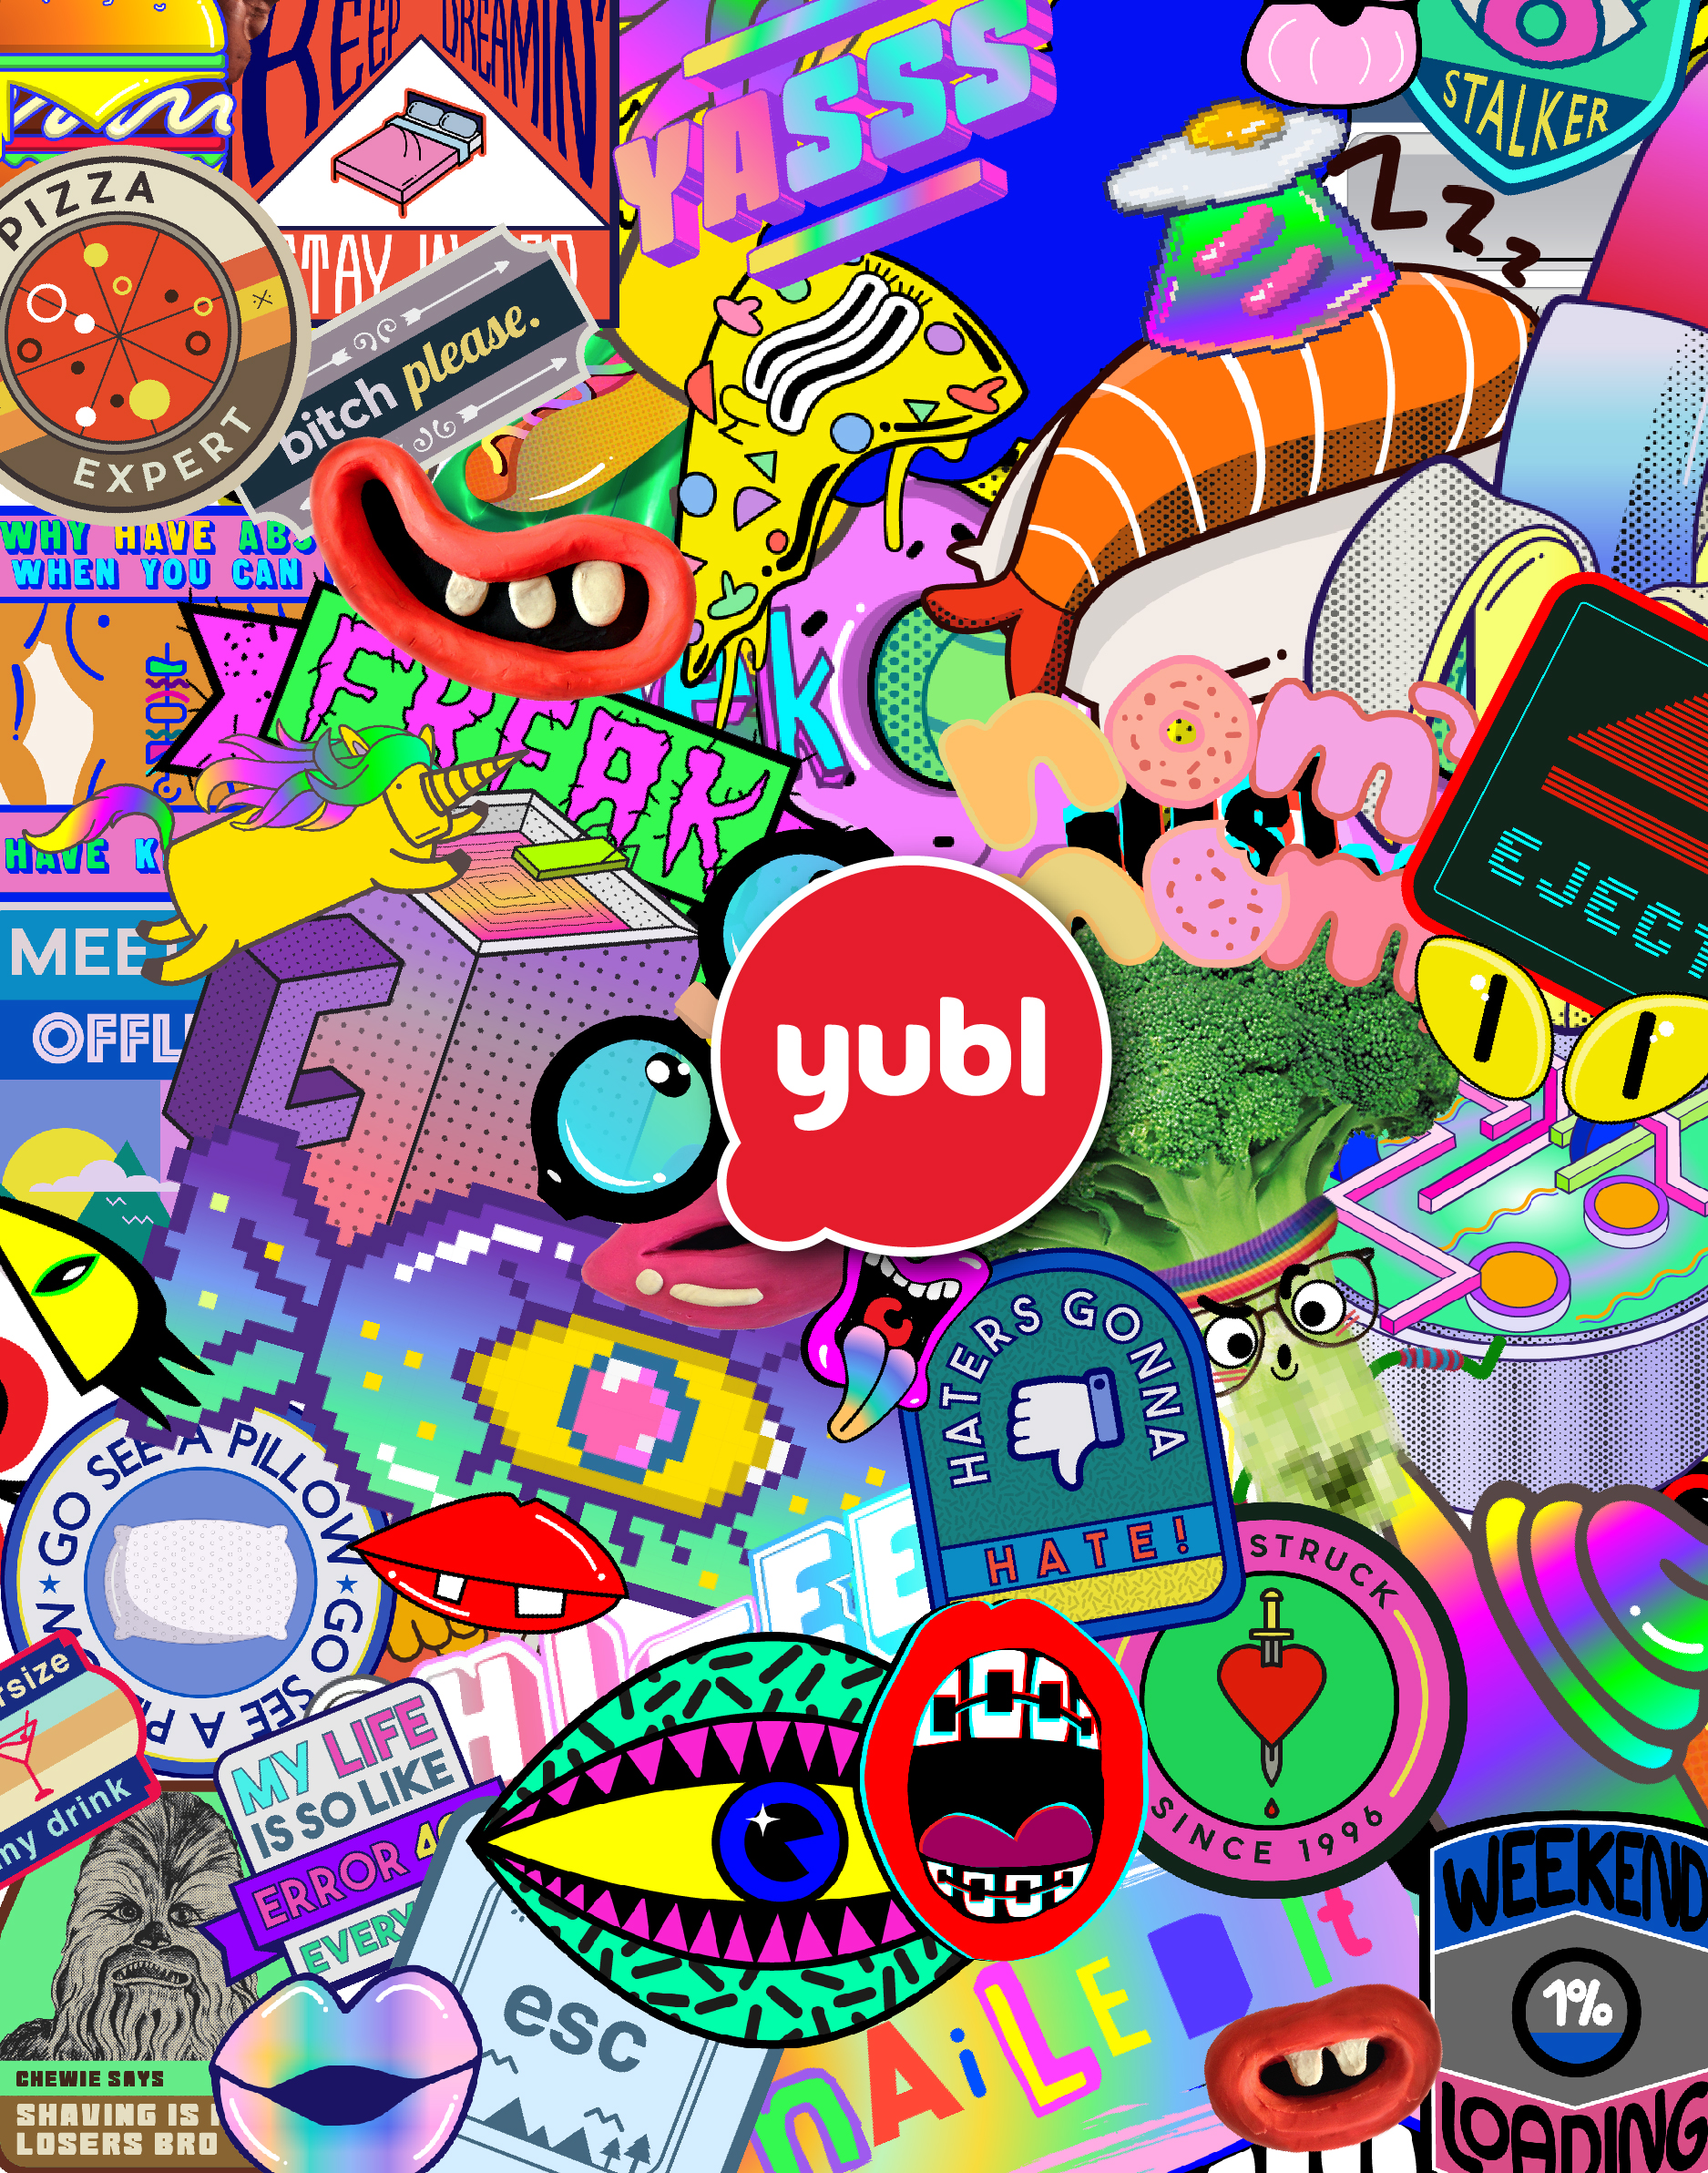 yubl-01